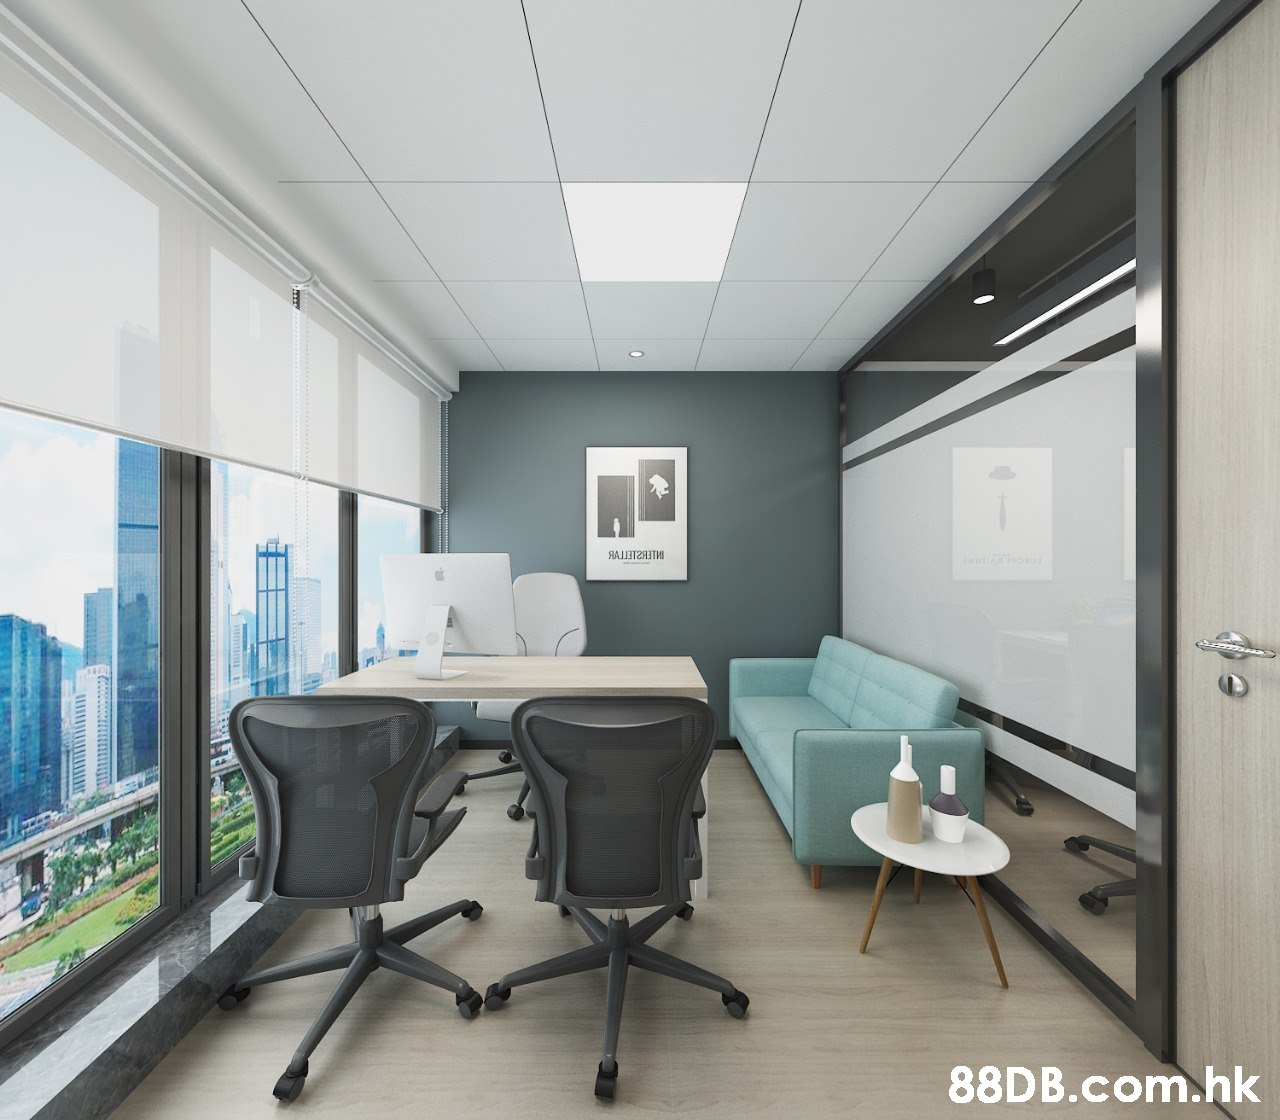 RAIT2T .hk  Office chair,Office,Ceiling,Interior design,Room